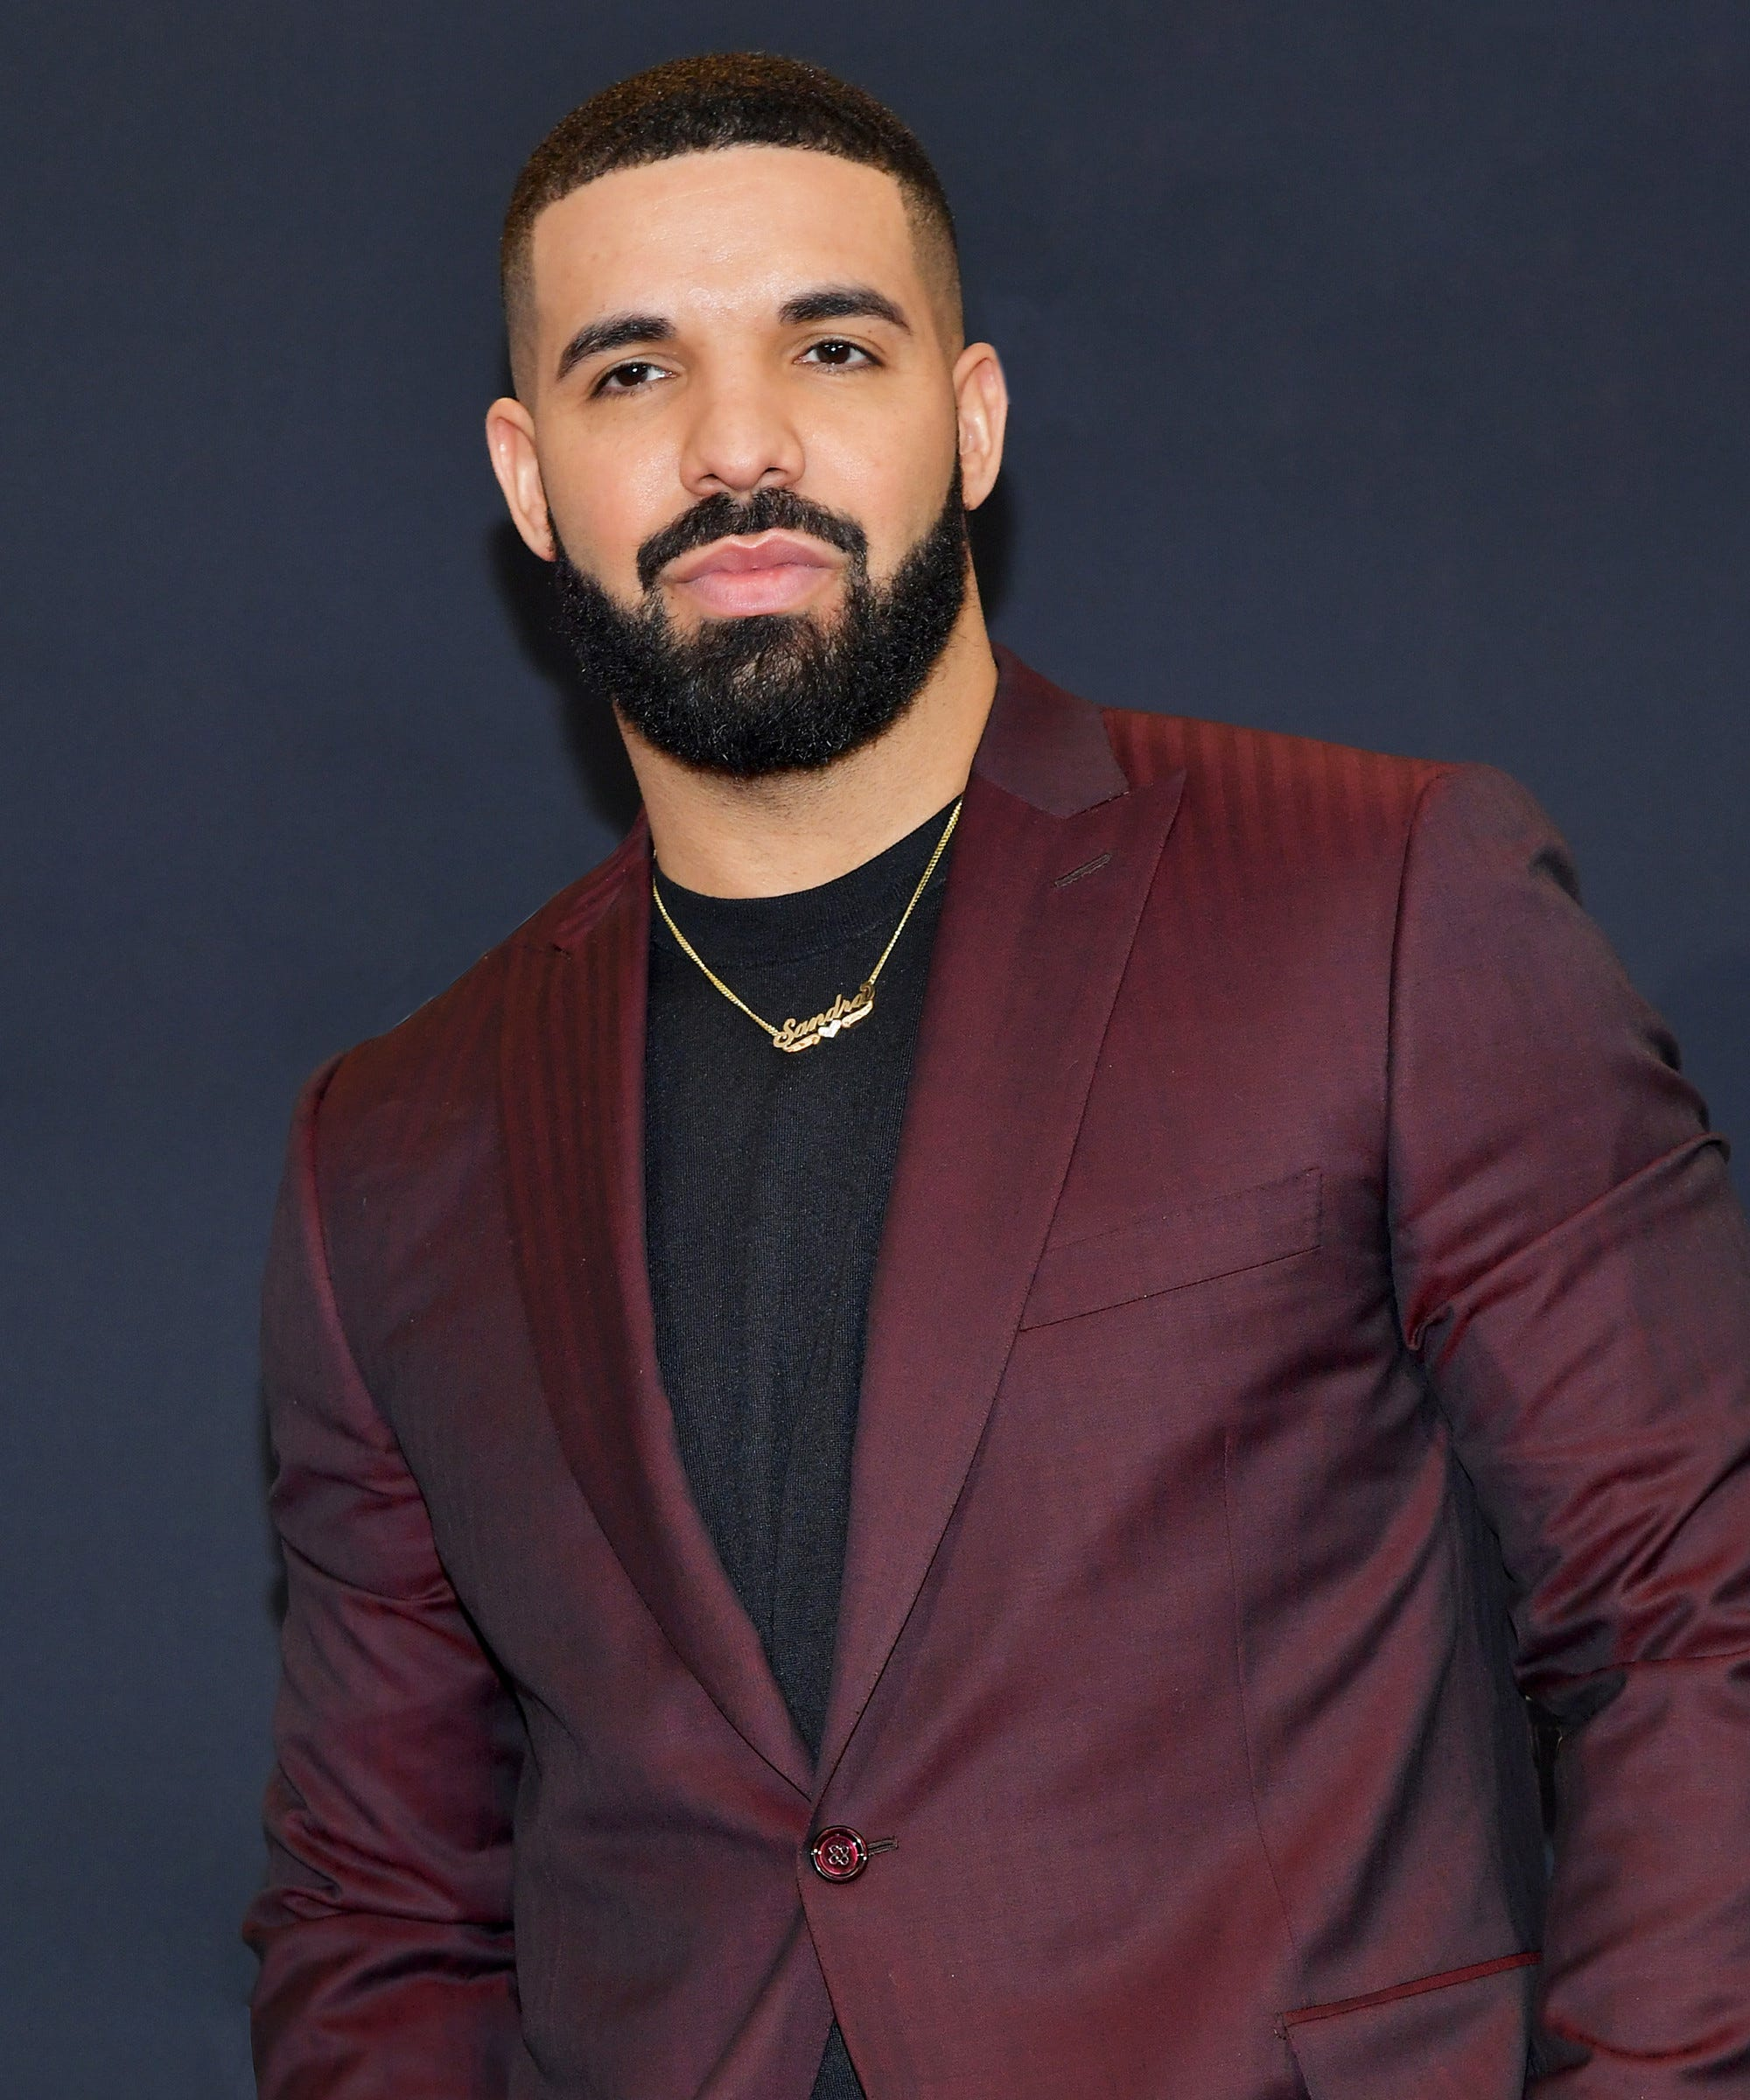 Drake Instagram Photo Sparks Fake Abs Surgery Rumors